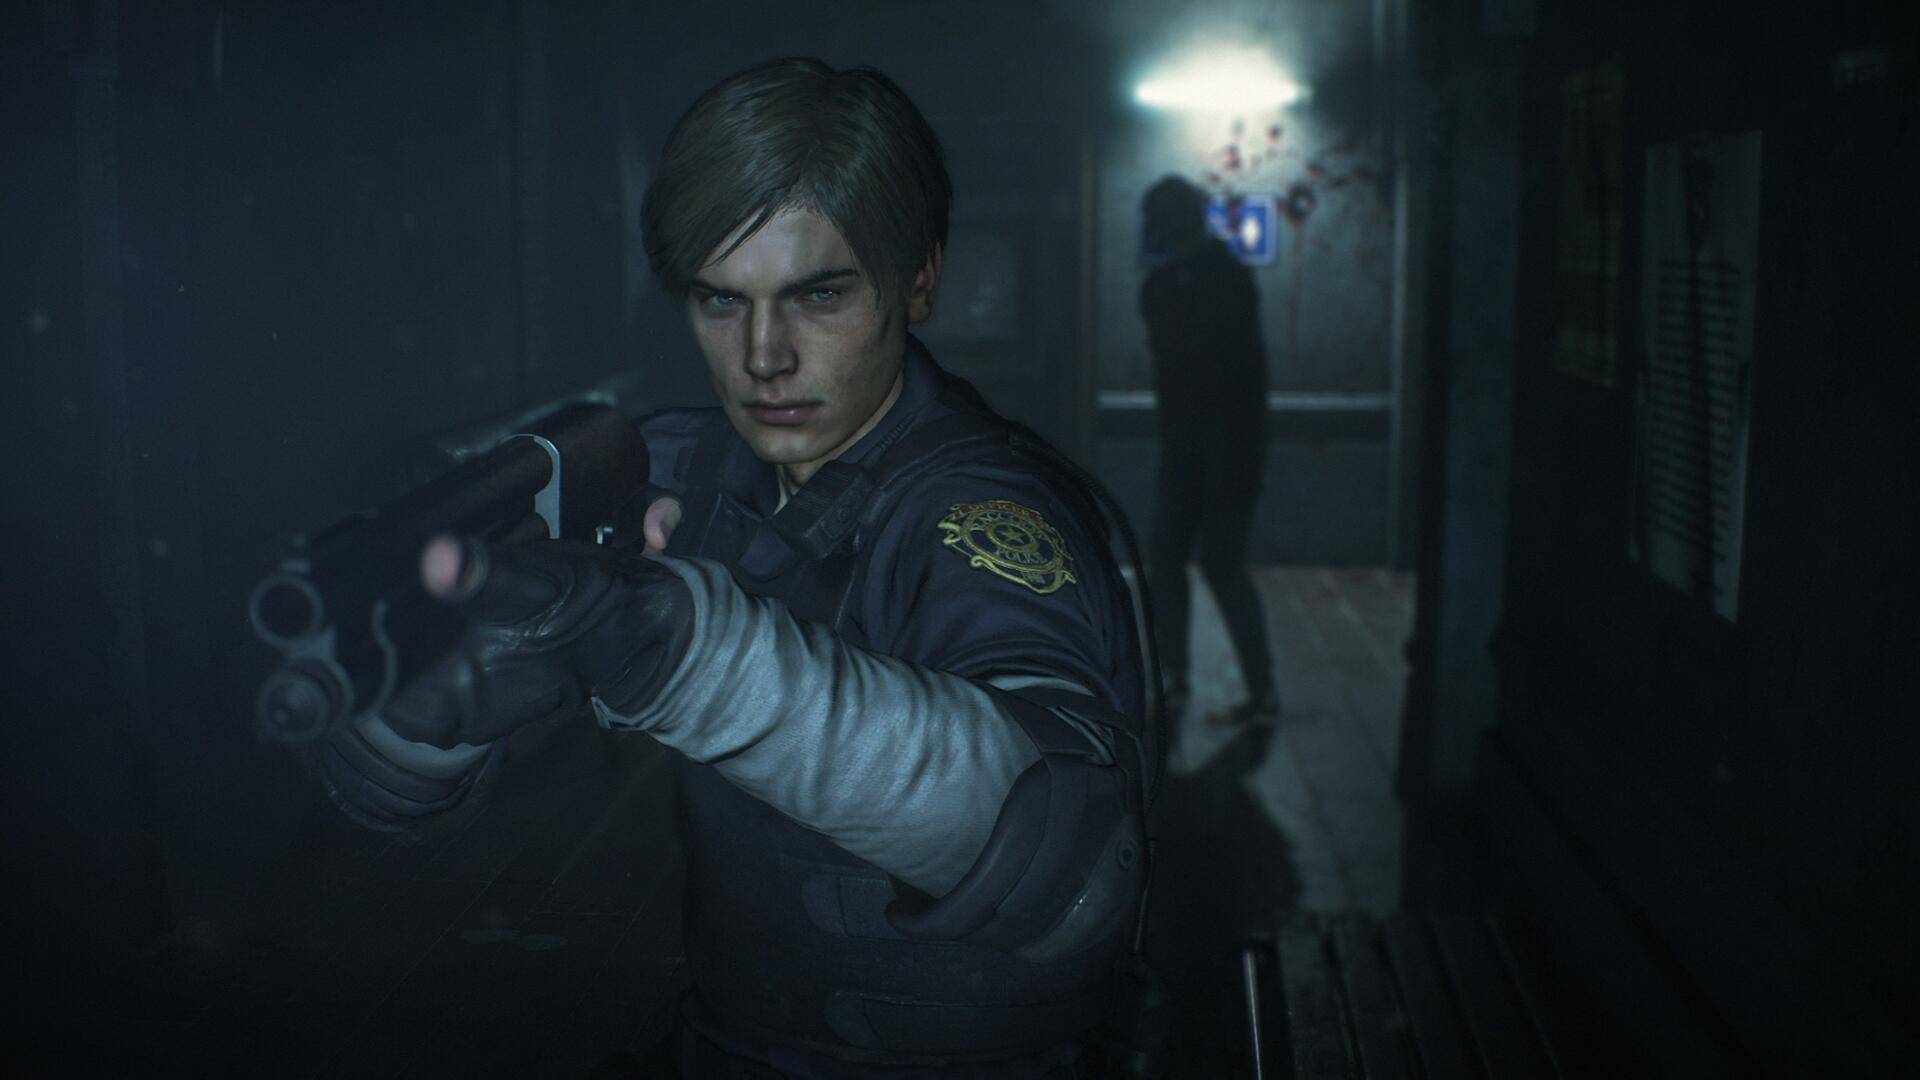 Meet the Resident Evil 2 Speedrunner Devoted to Beating Games